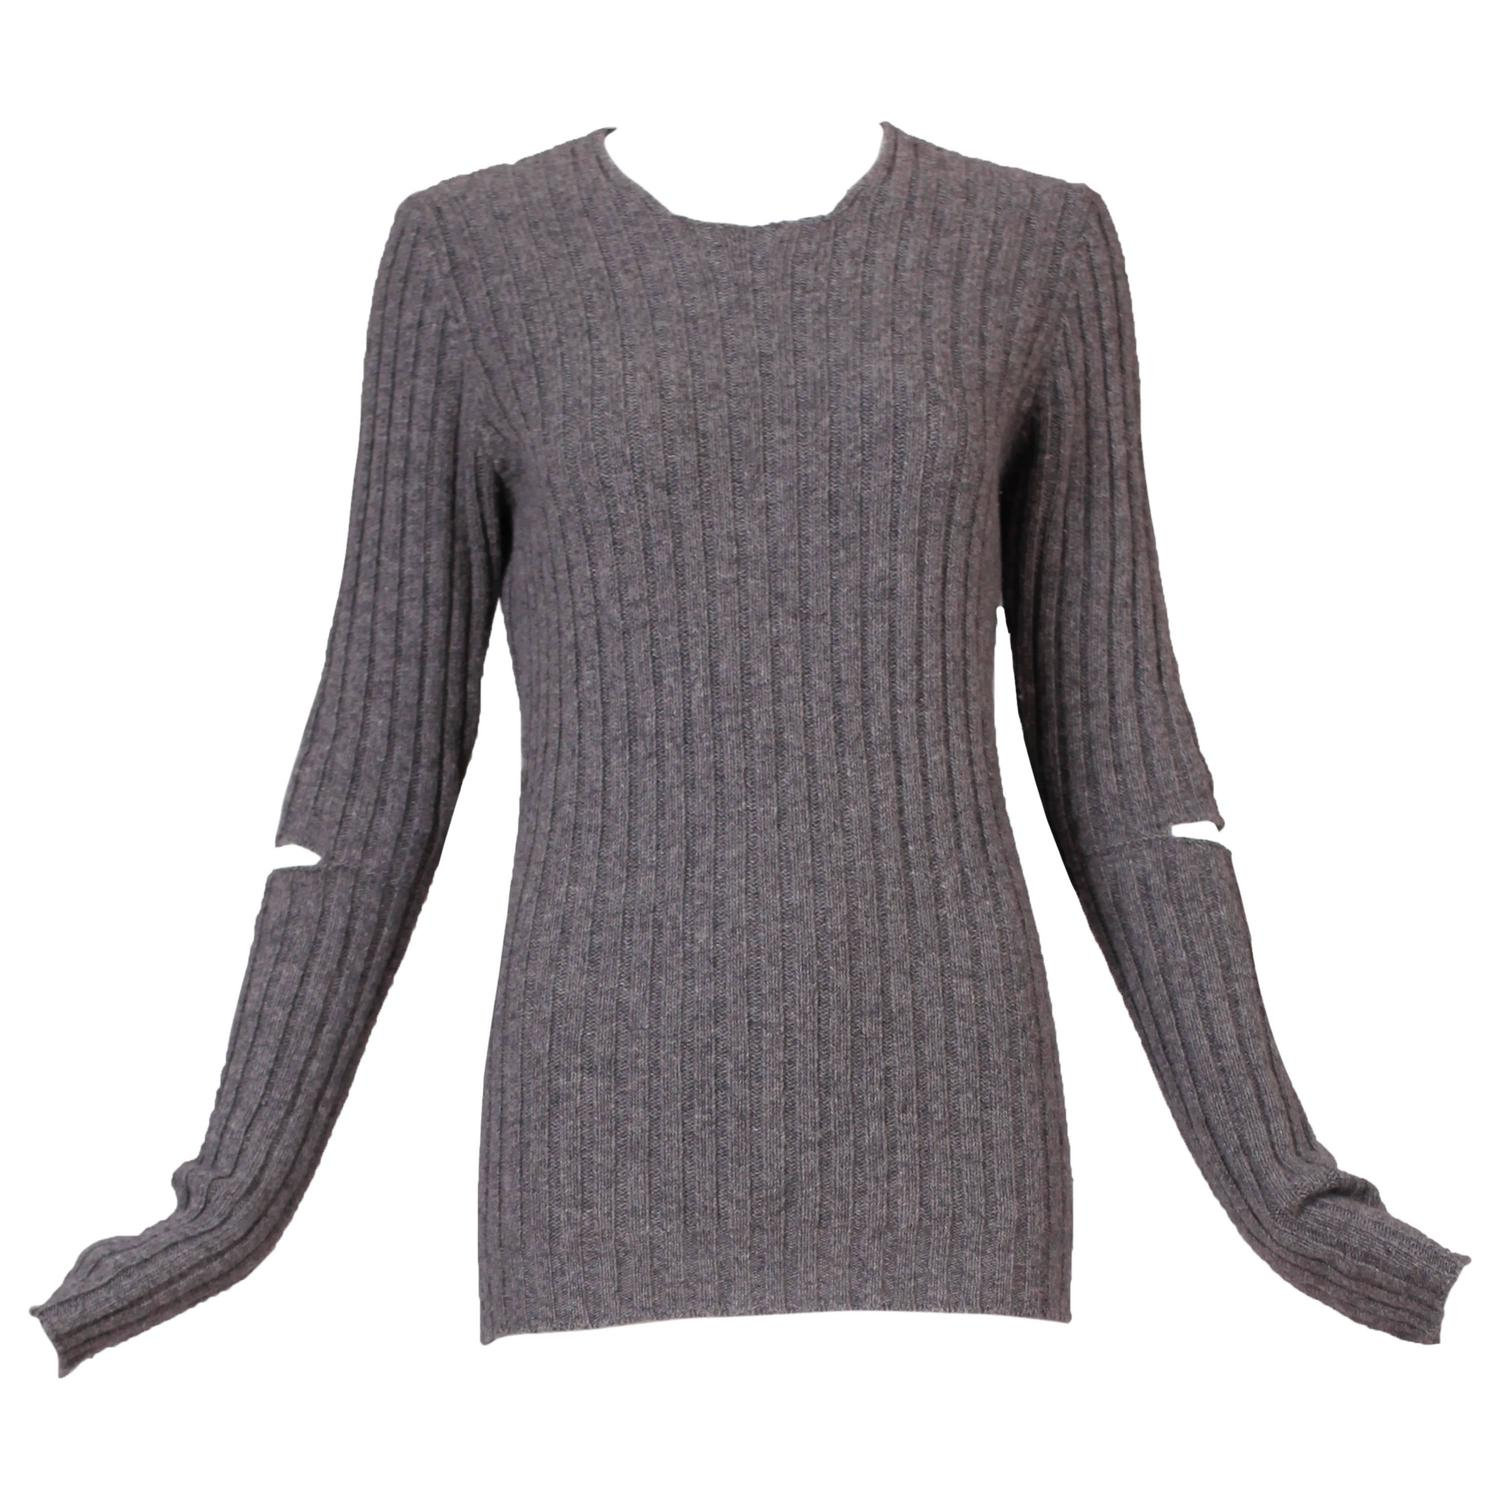 1990's Helmut Lang Heather Gray Ribbed Knit Sweater Top w/Cutout ...